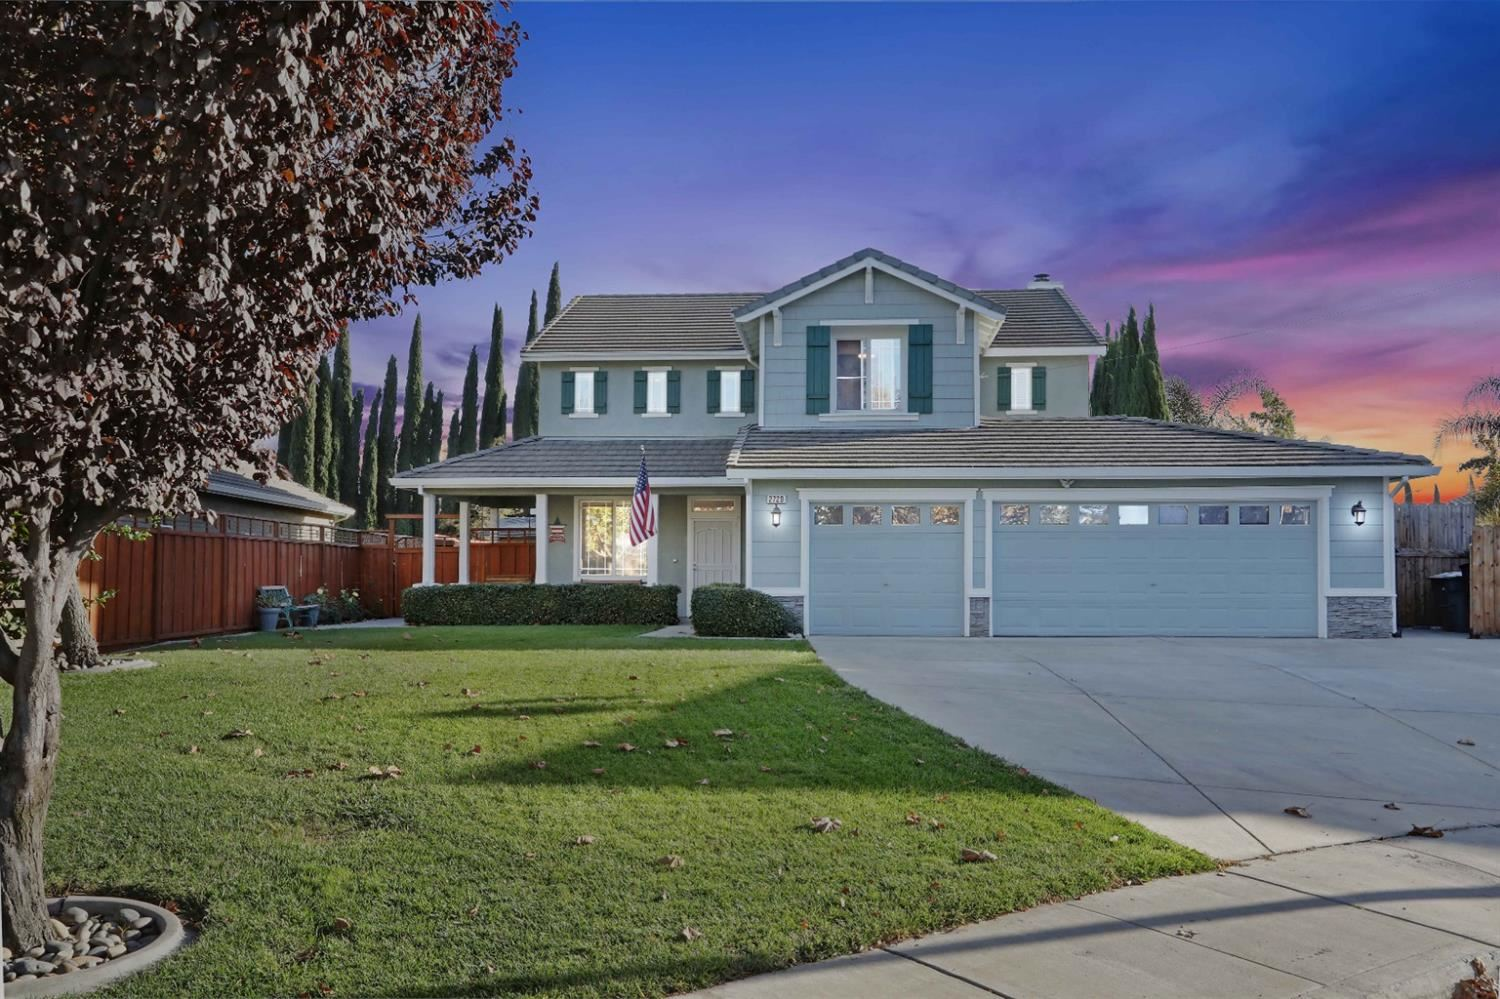 Photo of 2720 Old River Court, Tracy, CA 95377 (MLS # 20063520)